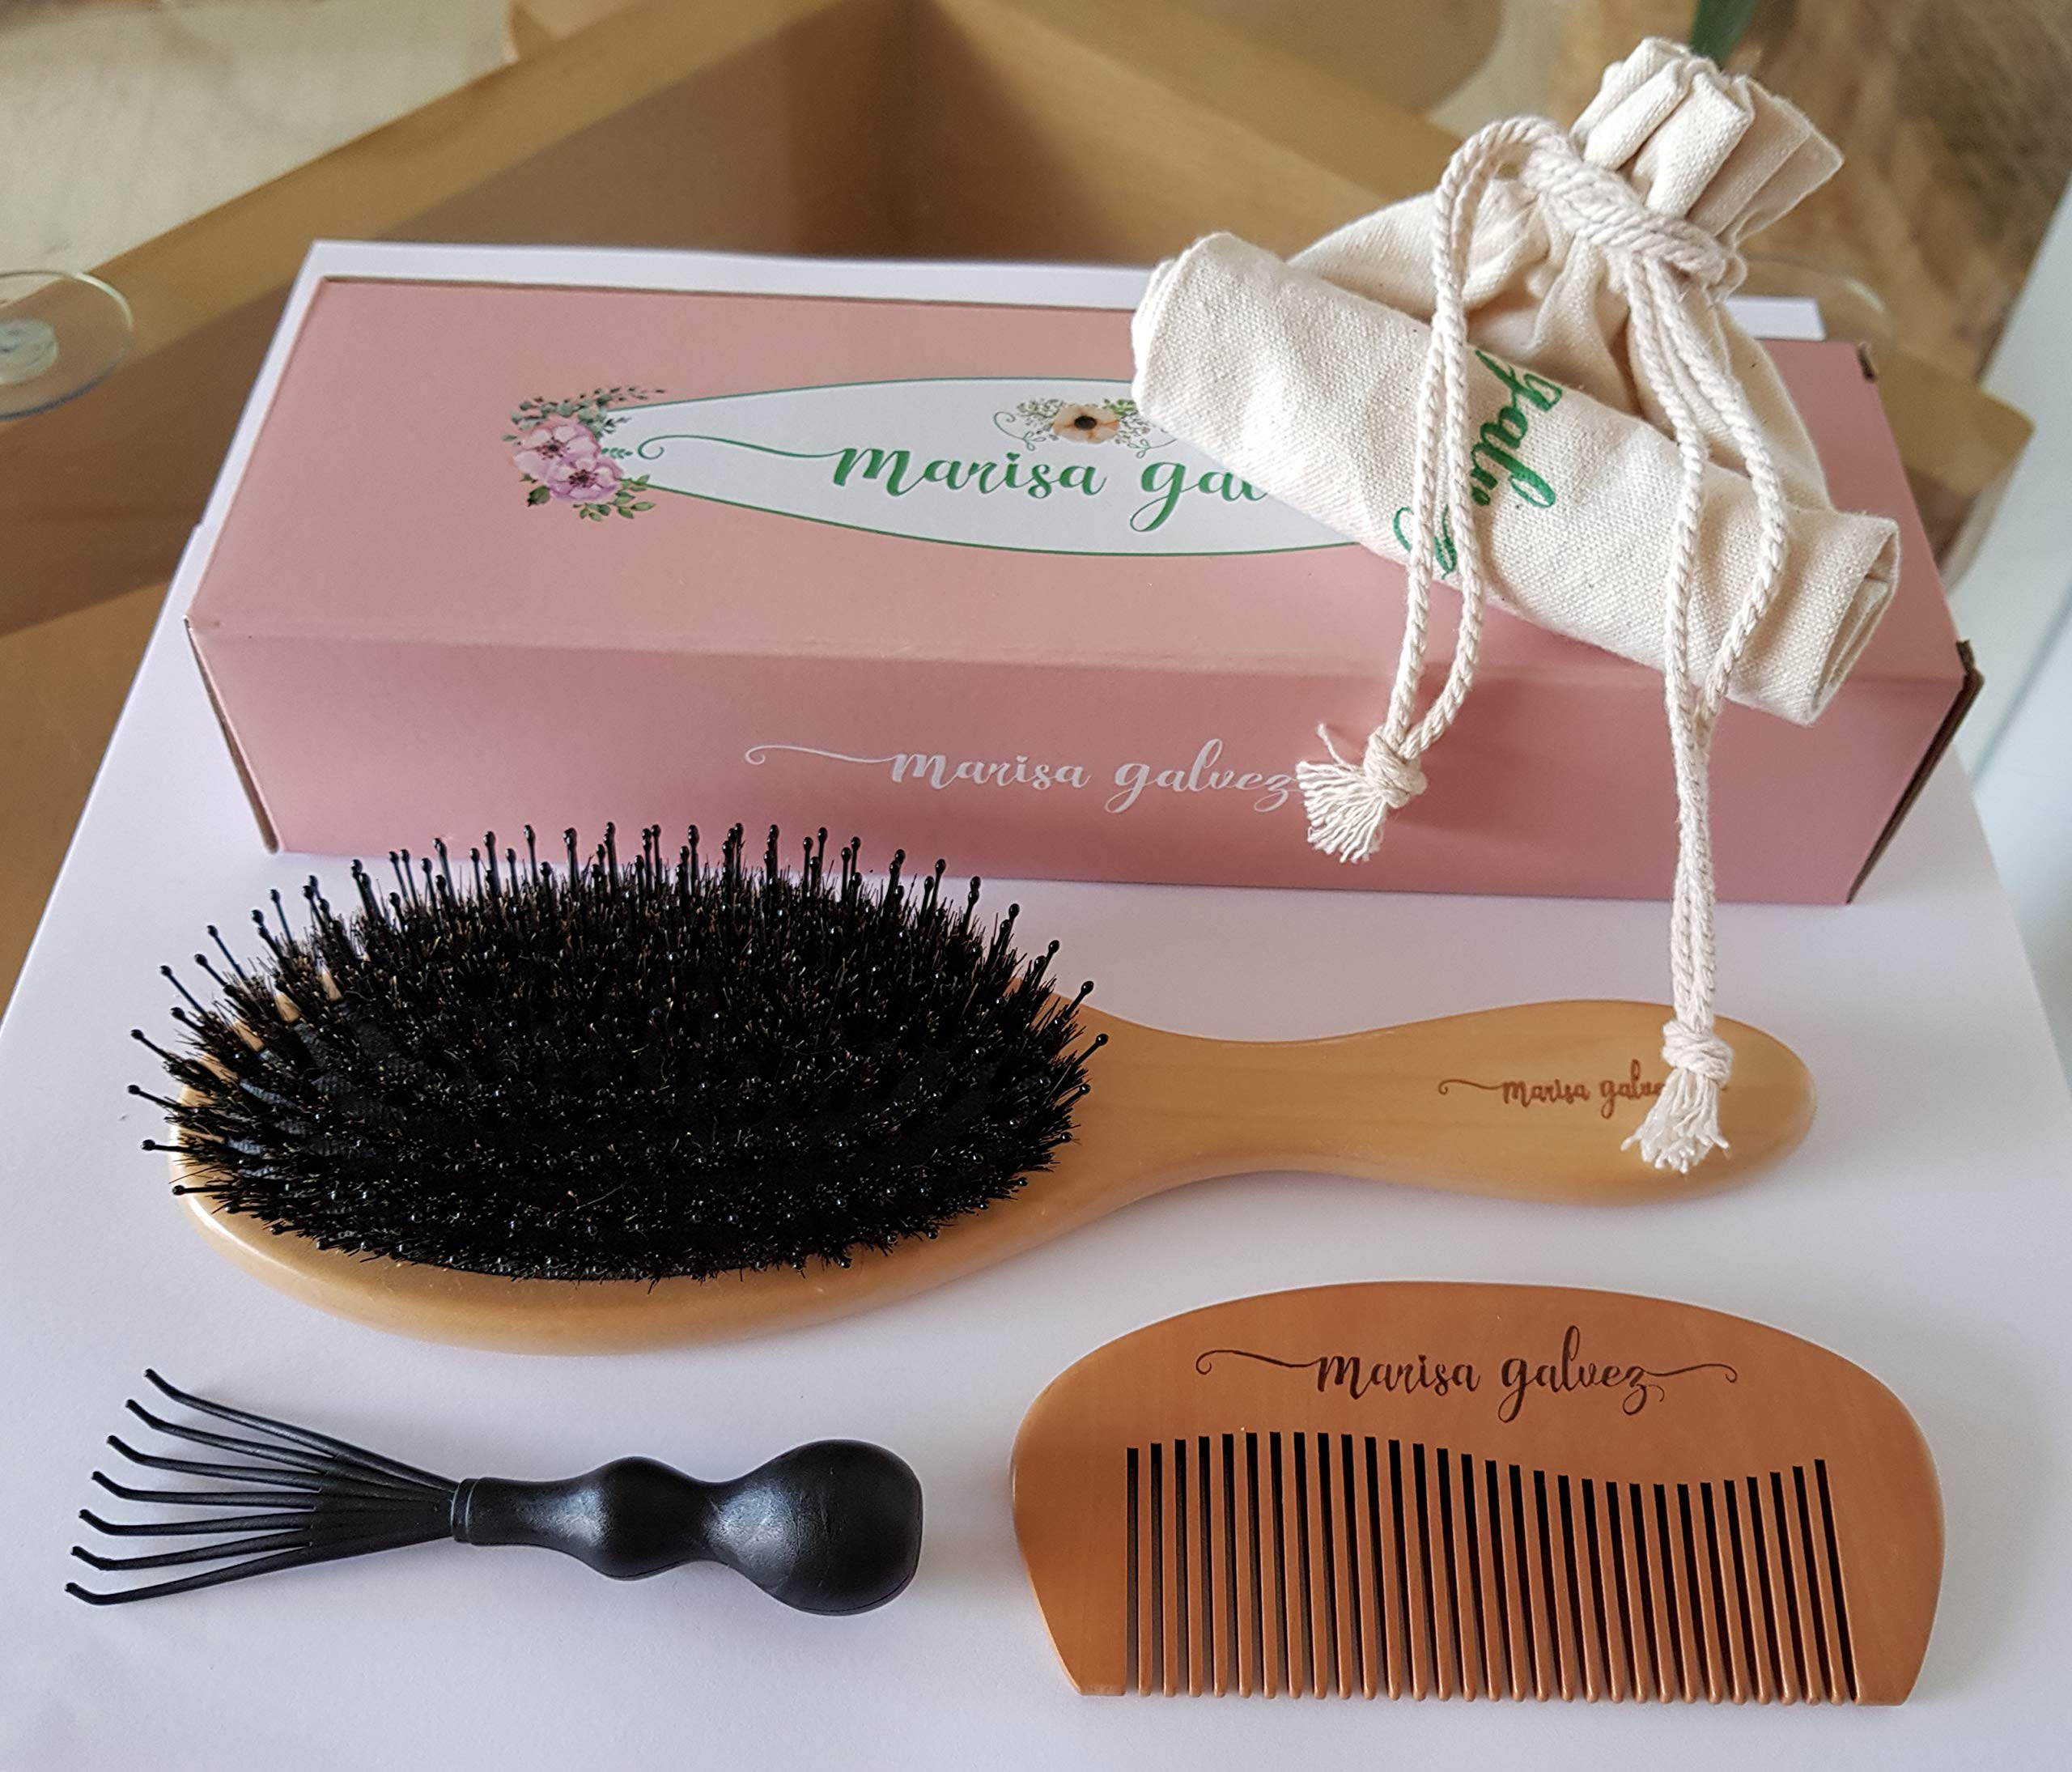 Hair Brush For Women - Boar Bristle Hair Brush - Detangling Straightening Wooden Comb - Adds Shine And Improve Hair Texture - For Long Short Thin Delicate Hair - Hair Brush Cleaner And Bag As Gifts